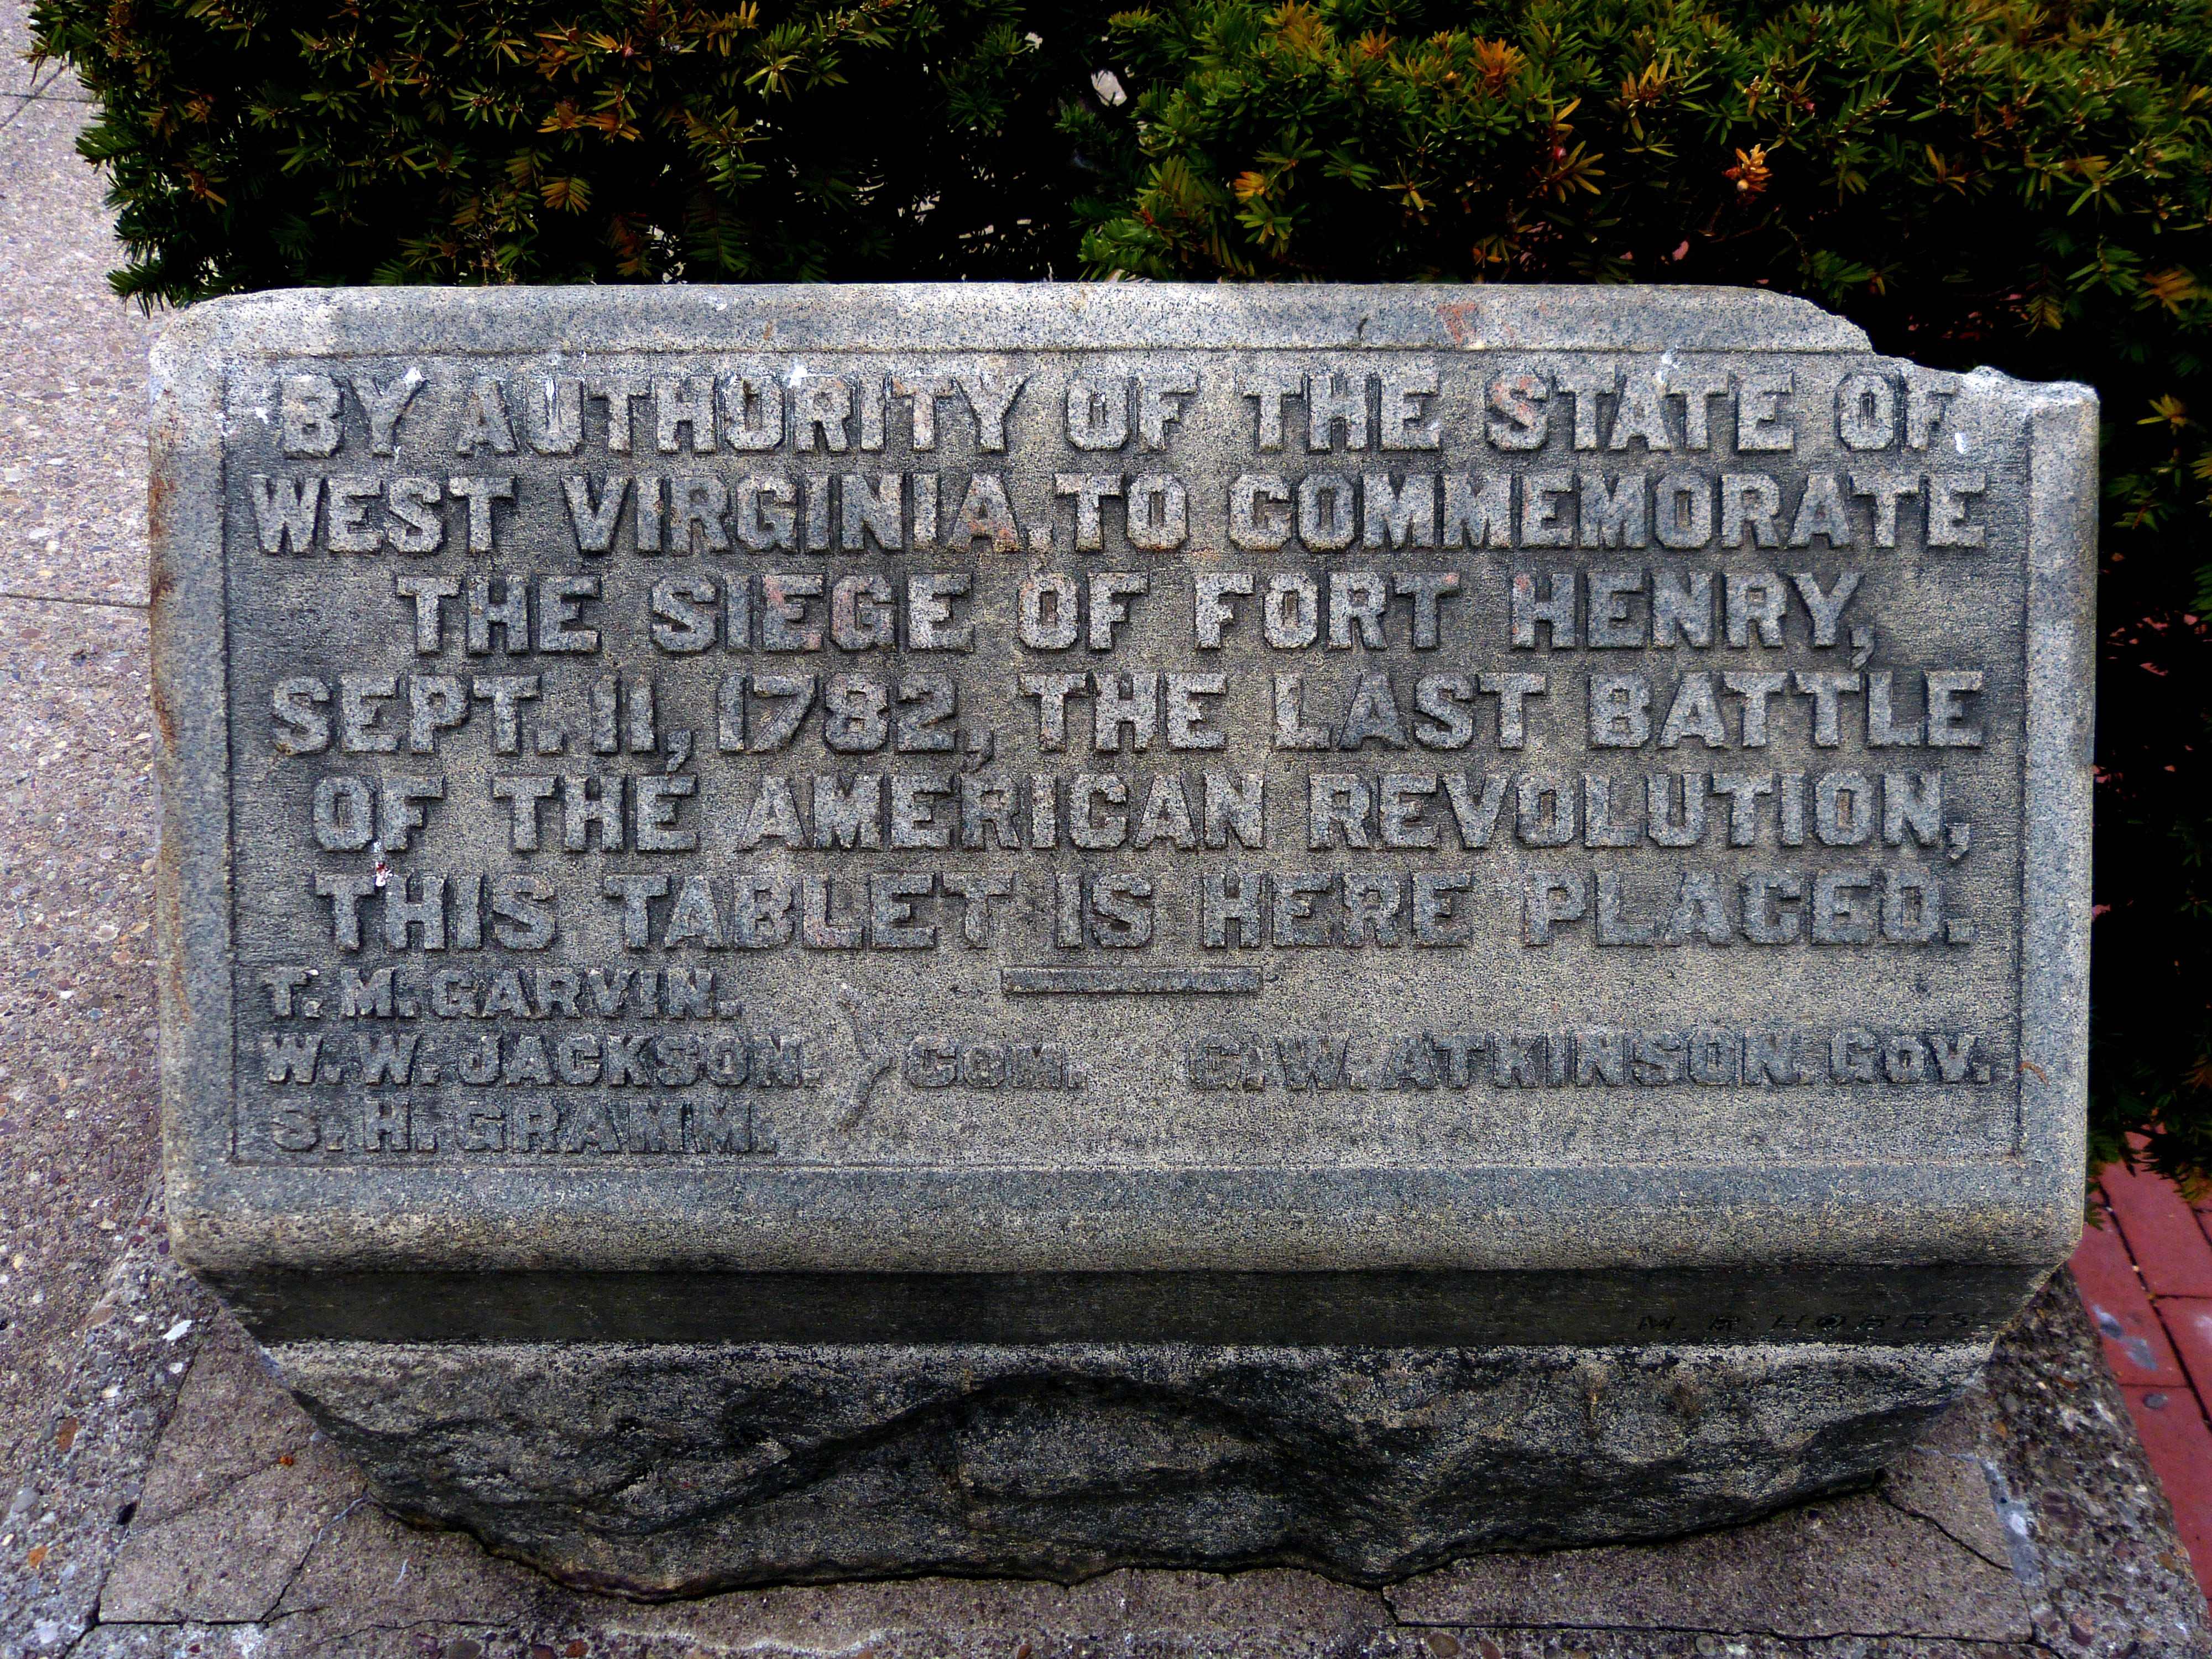 This Wheeling tablet was dedicated in the early 1900s to commemorate the siege of Fort Henry